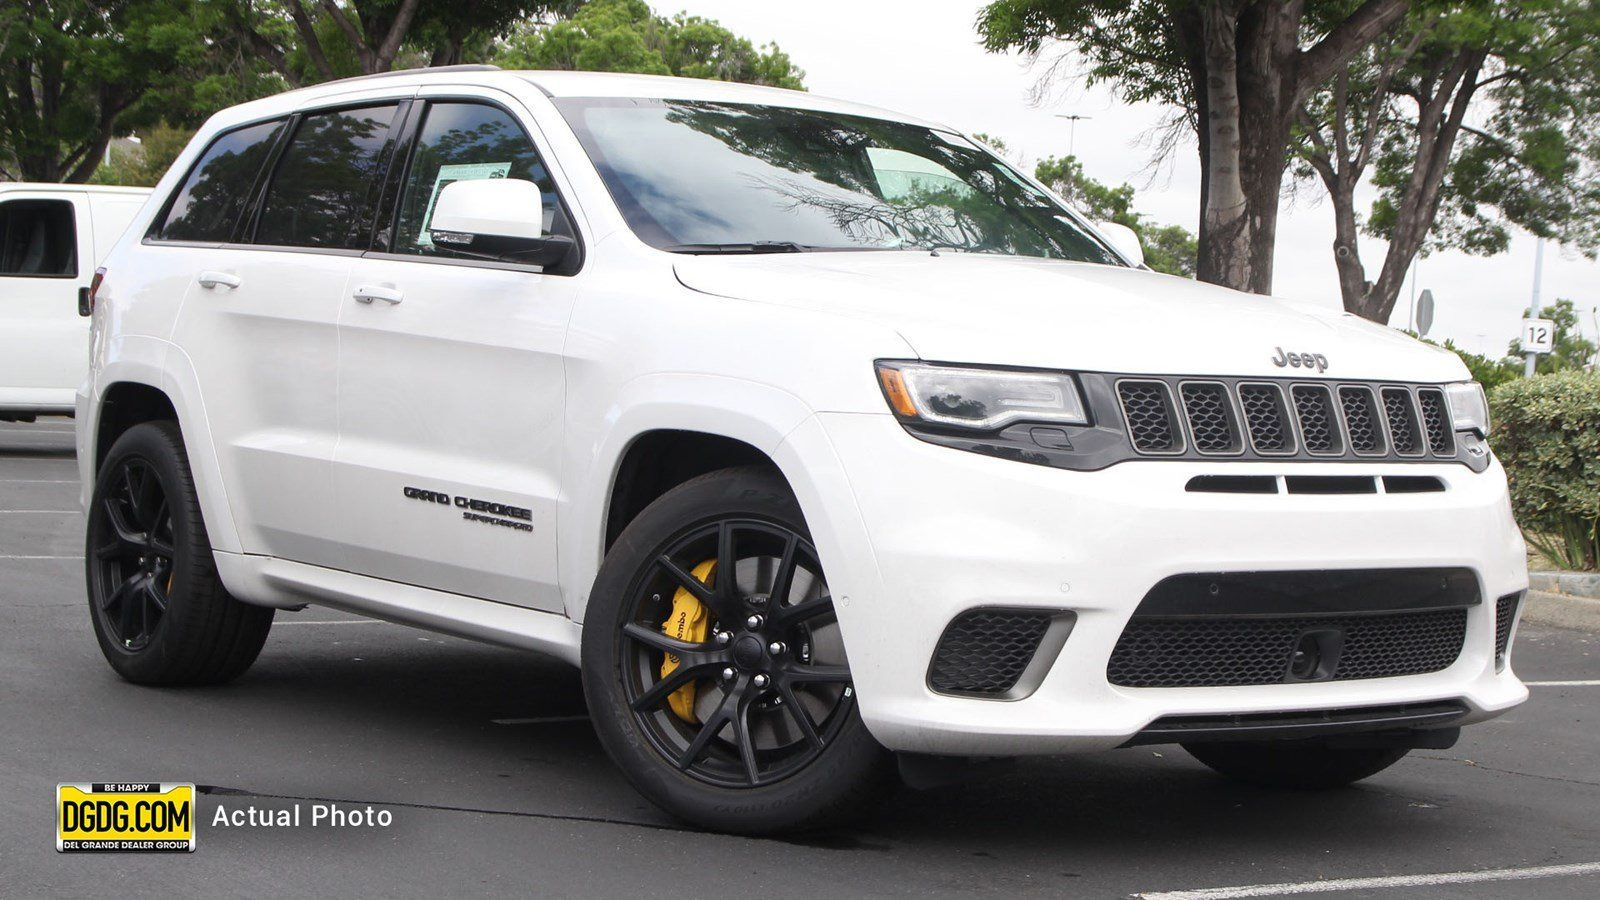 Pin By Roshard Rolle On Future Cars Jeep Grand Cherokee Jeep Grand Cherokee Srt Jeep